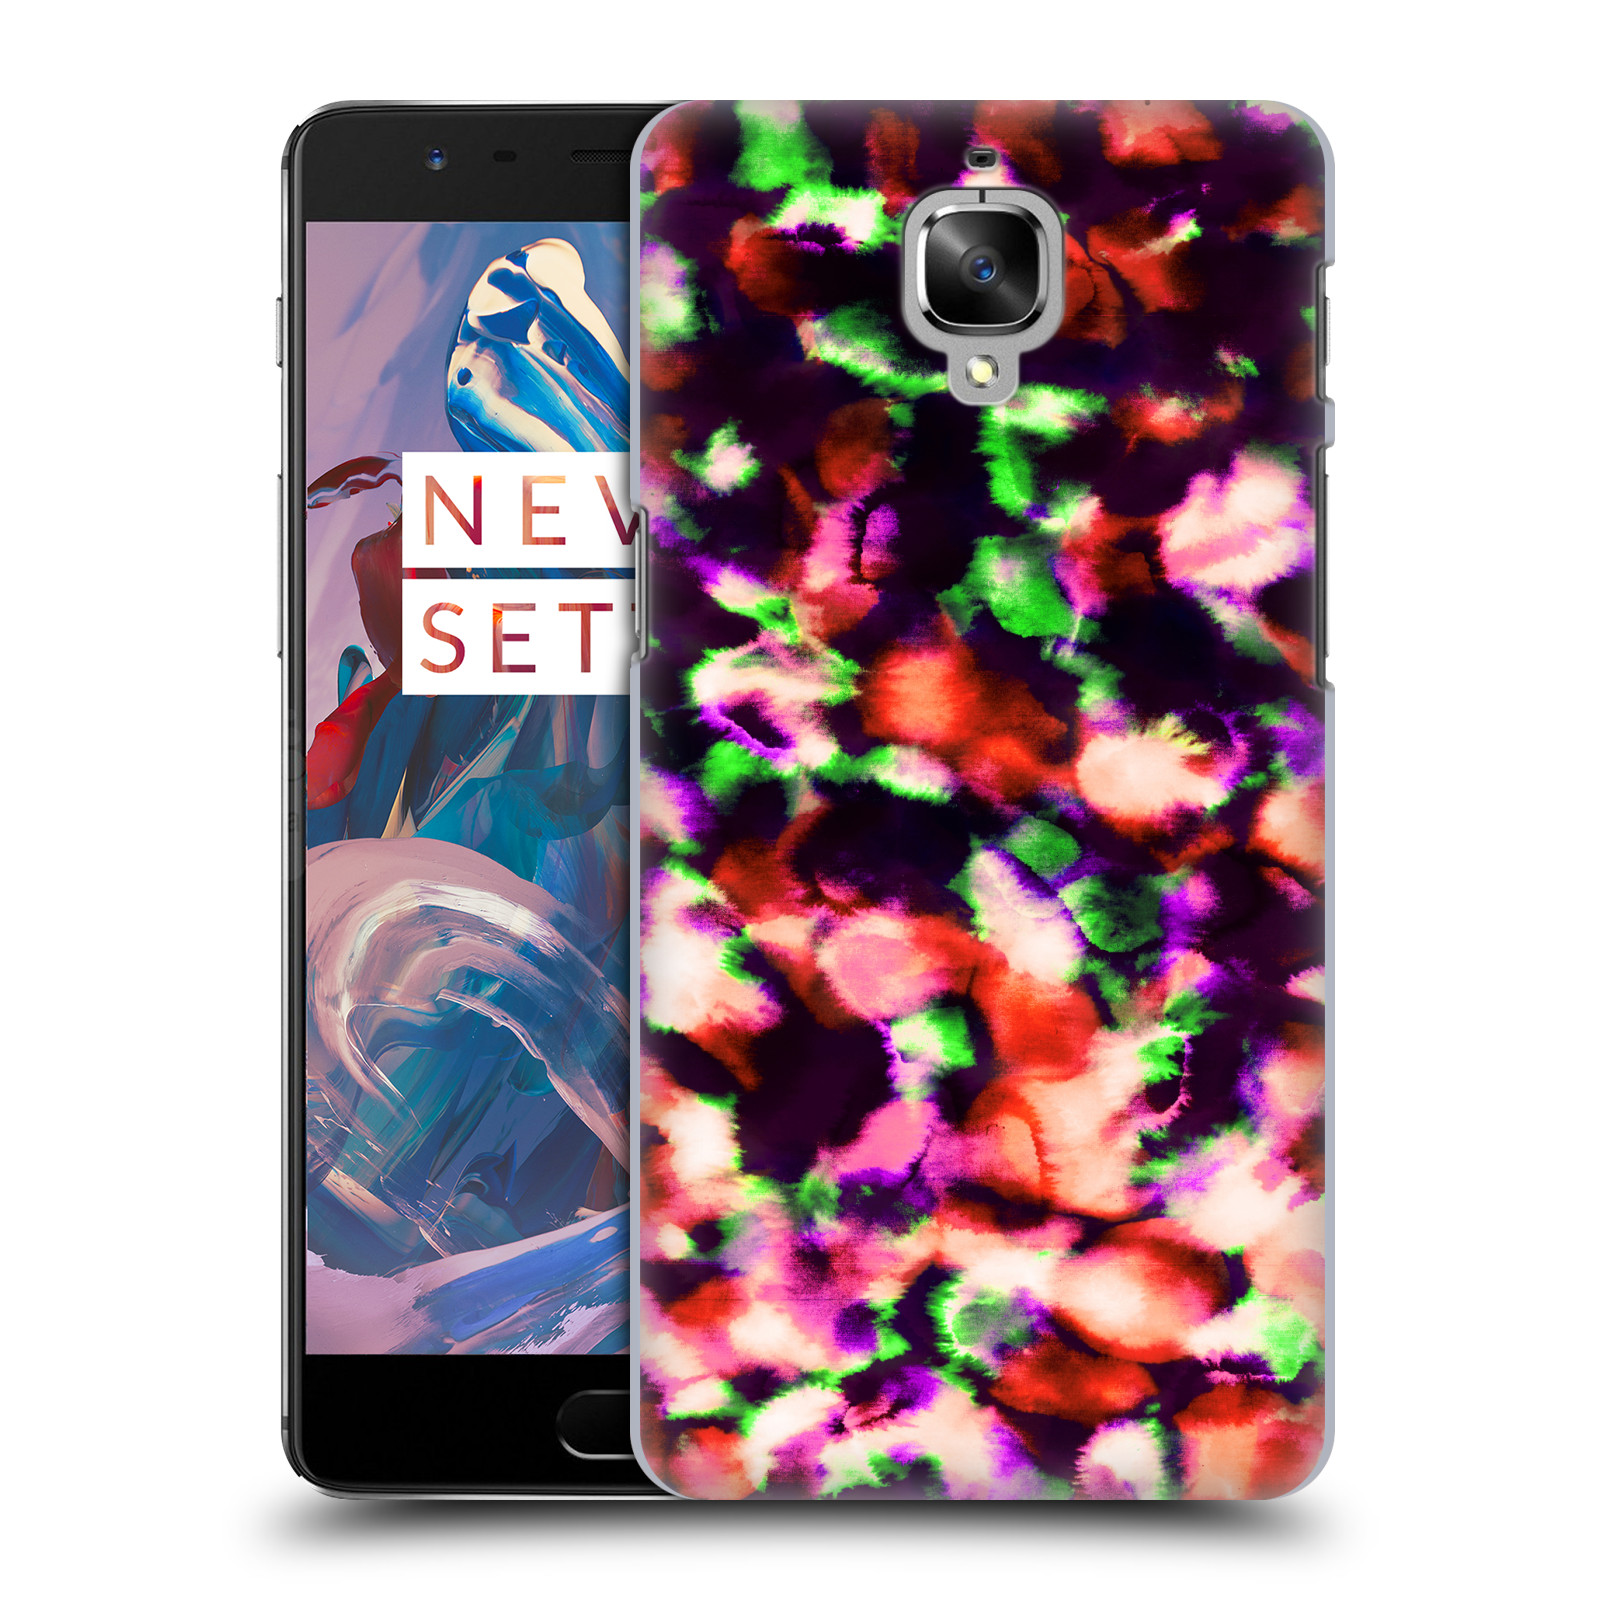 OFFICIAL AMY SIA ICE HARD BACK CASE FOR ONEPLUS ASUS AMAZON